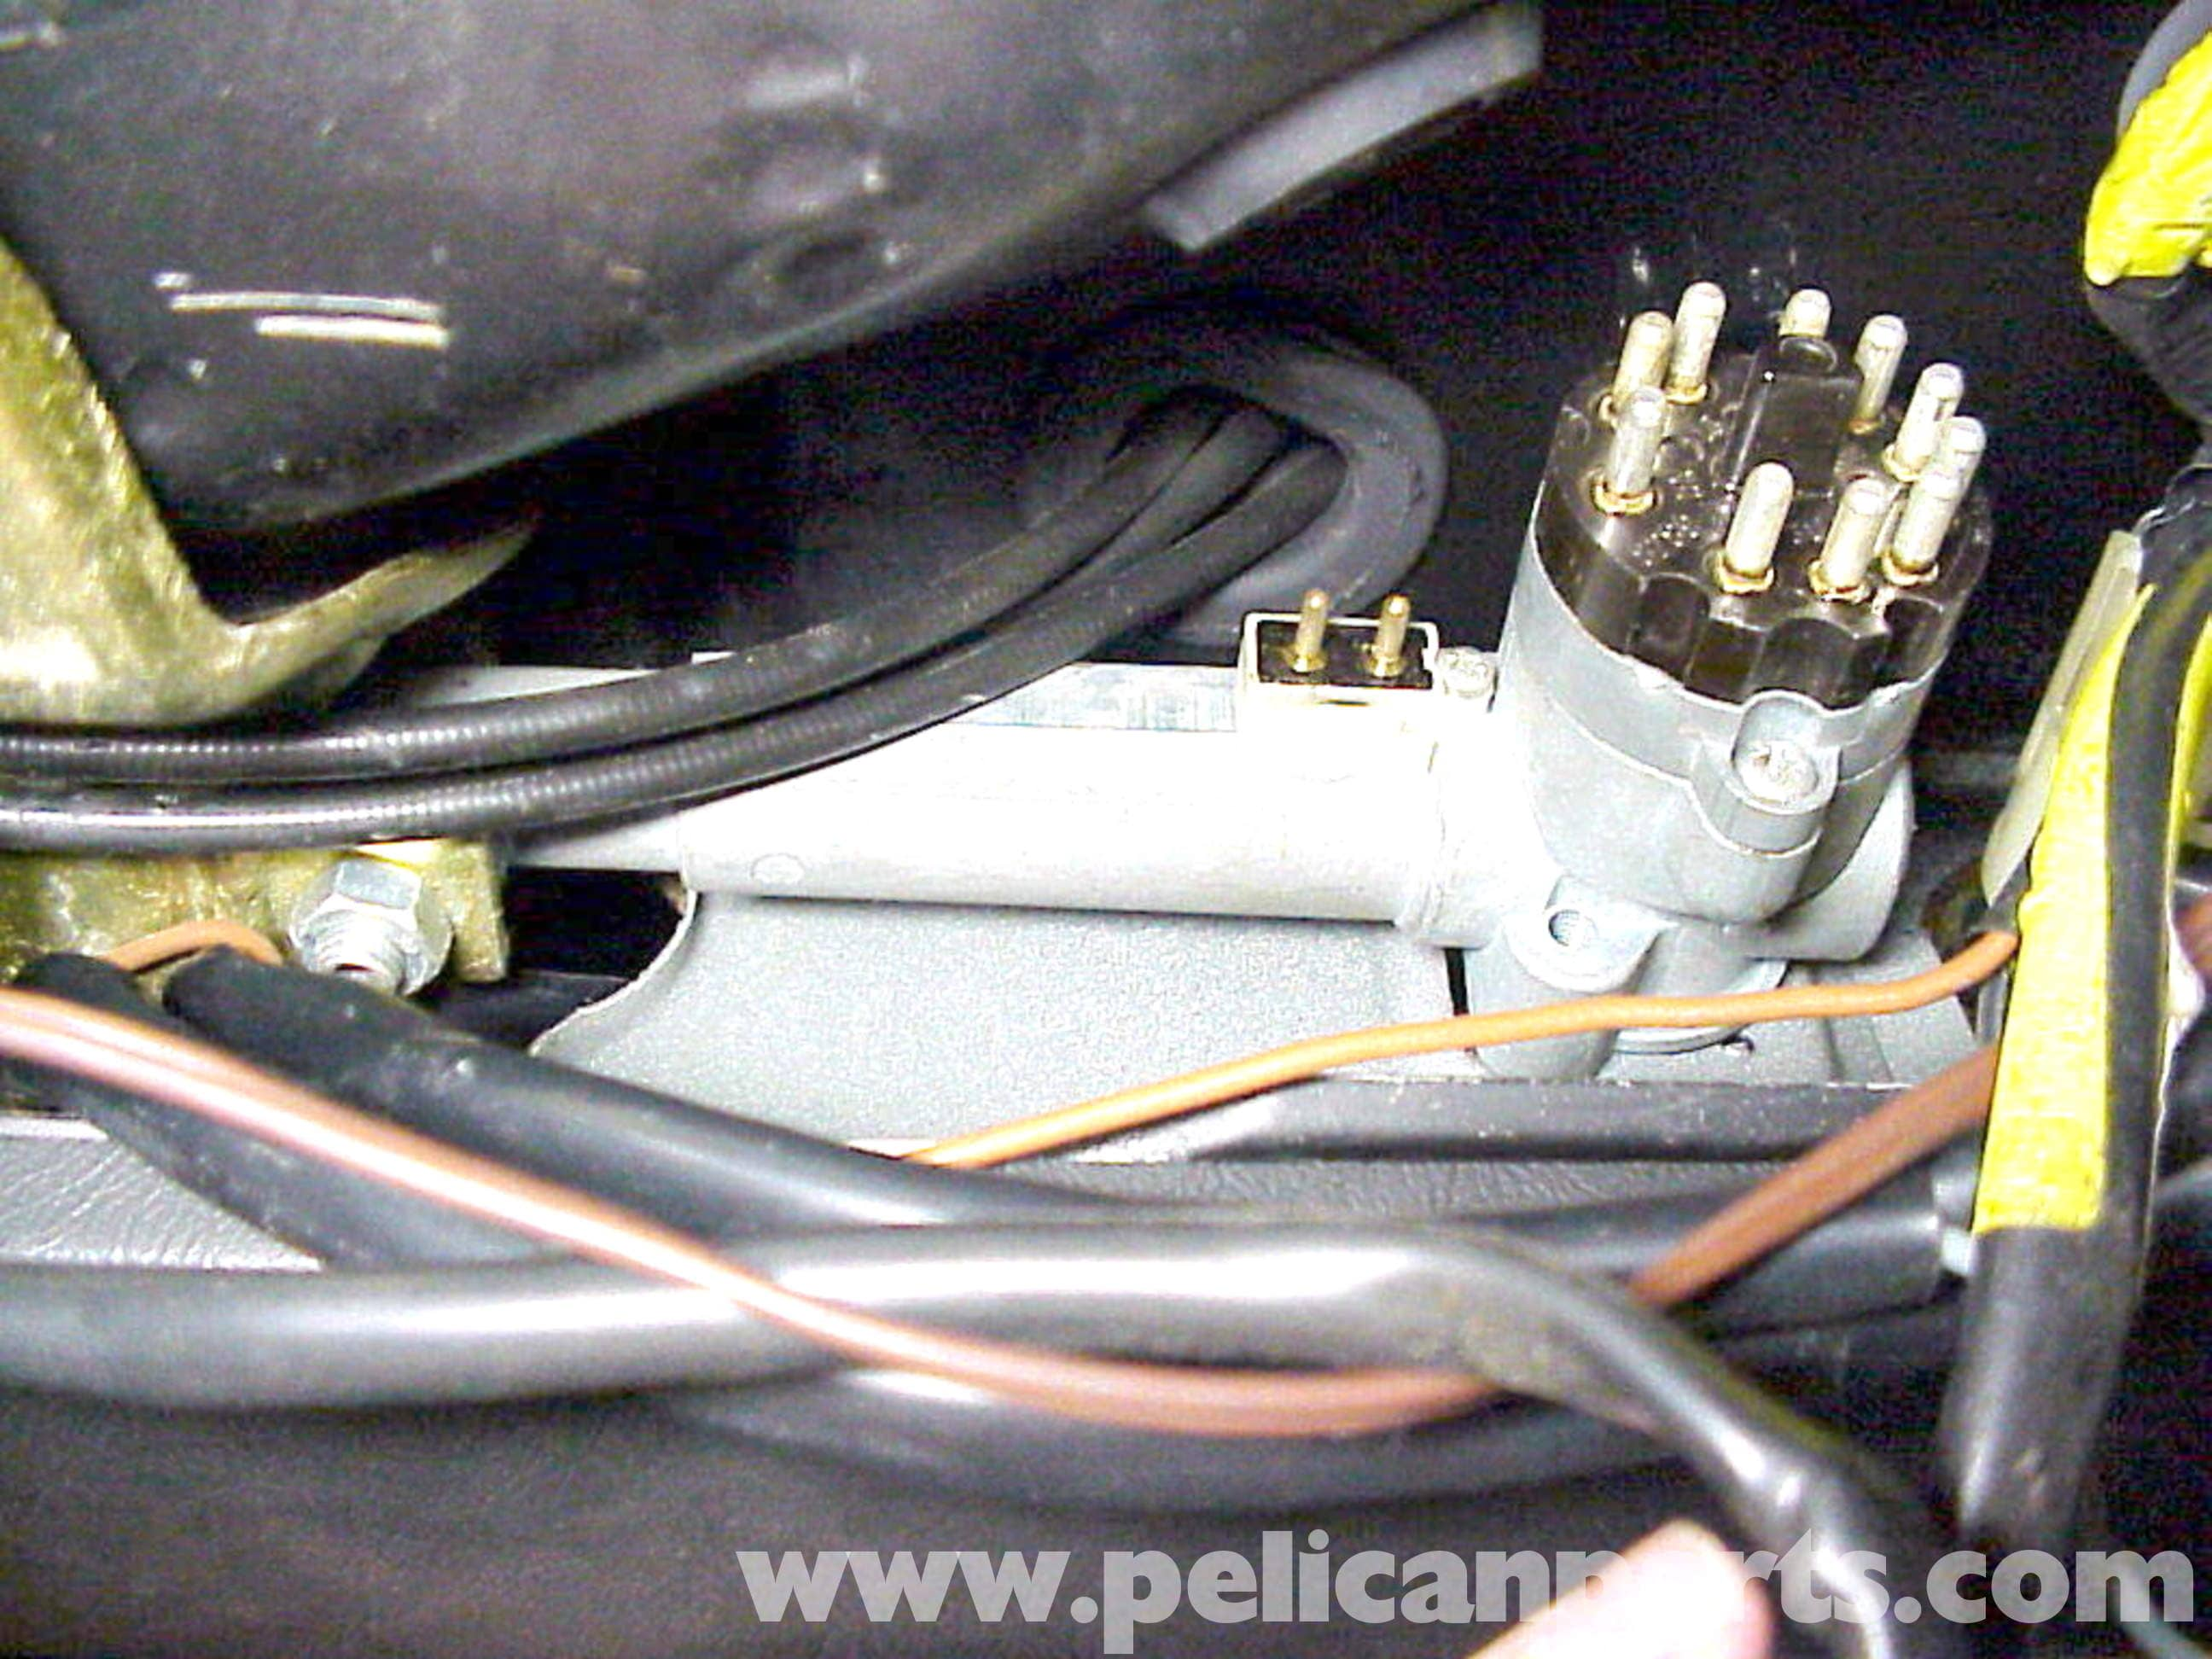 Porsche 911 Starter Wiring Diagram Just Another Blog Of 1987 Engine Libraries Rh W60 Mo Stein De Repair